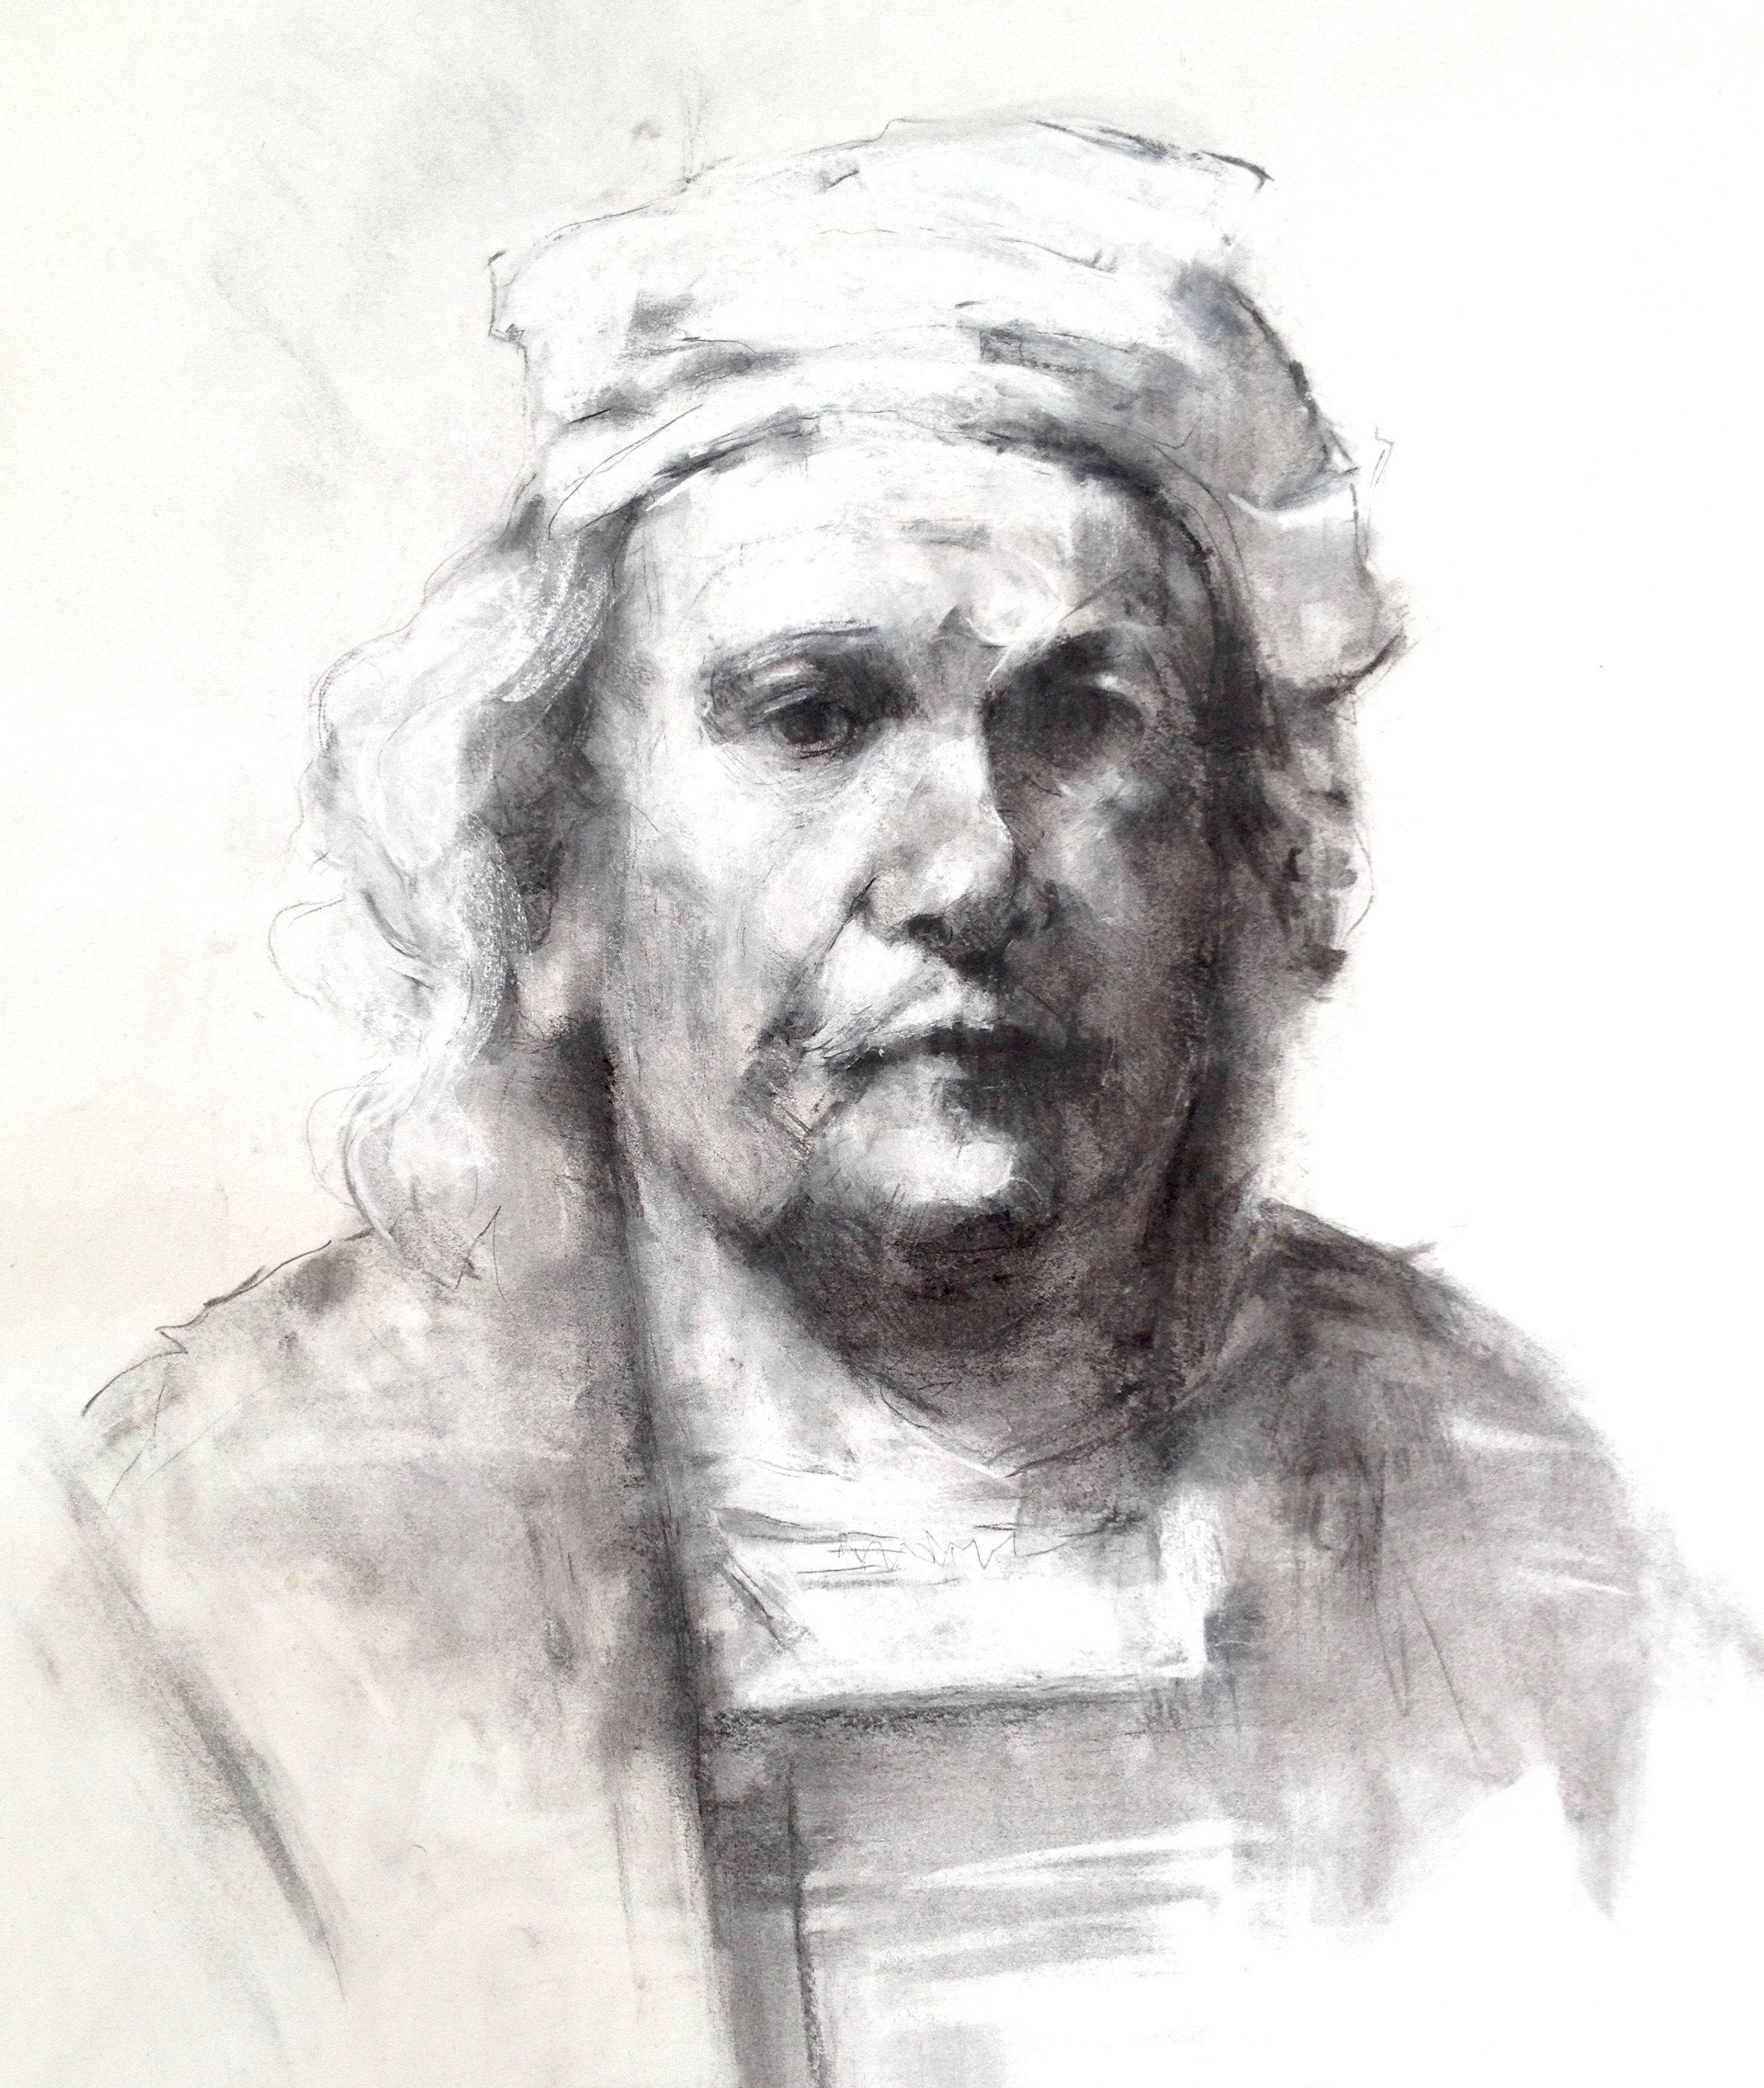 Study of Rembrandt